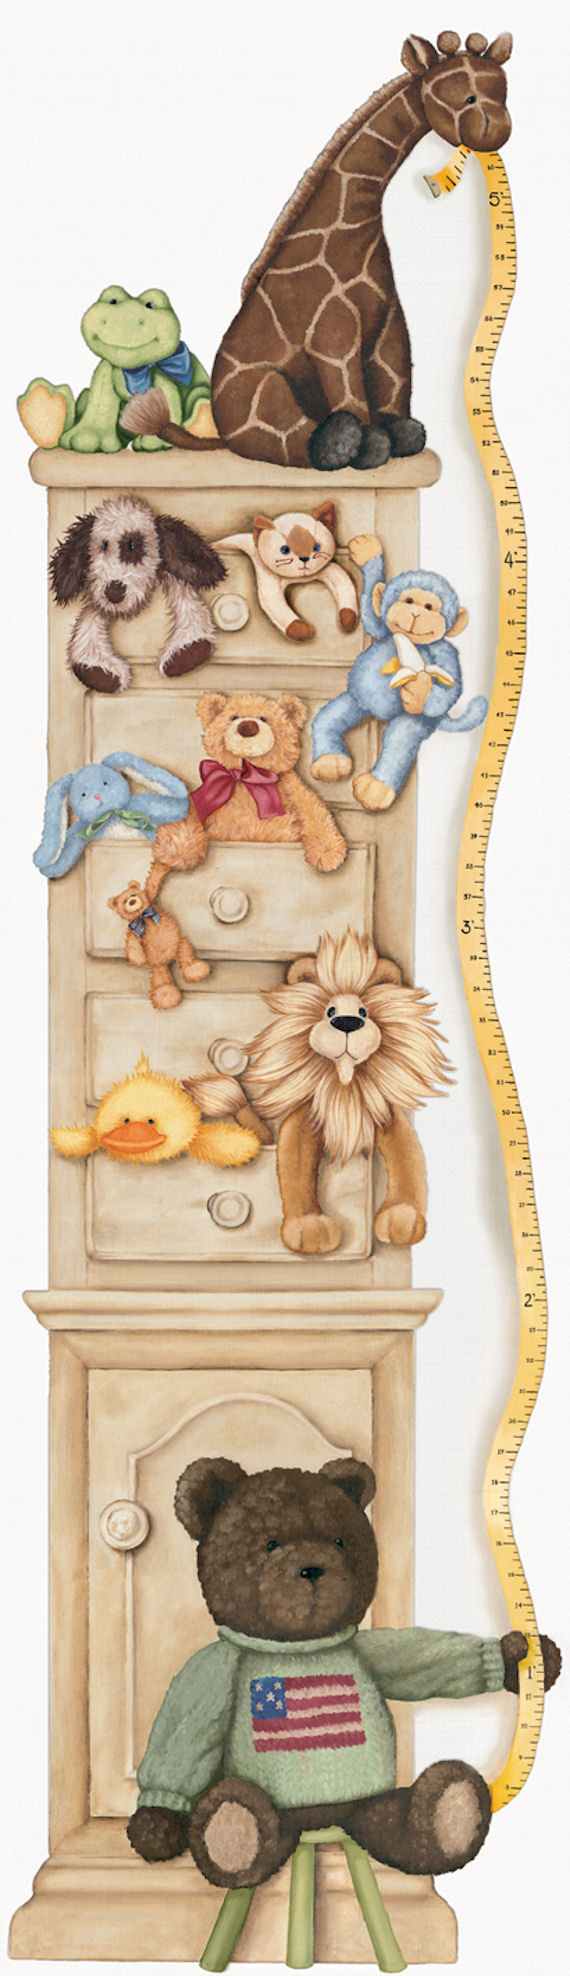 Growing  with Toy Friends  Art Accents Growth Char - Kids Wall Decor Store